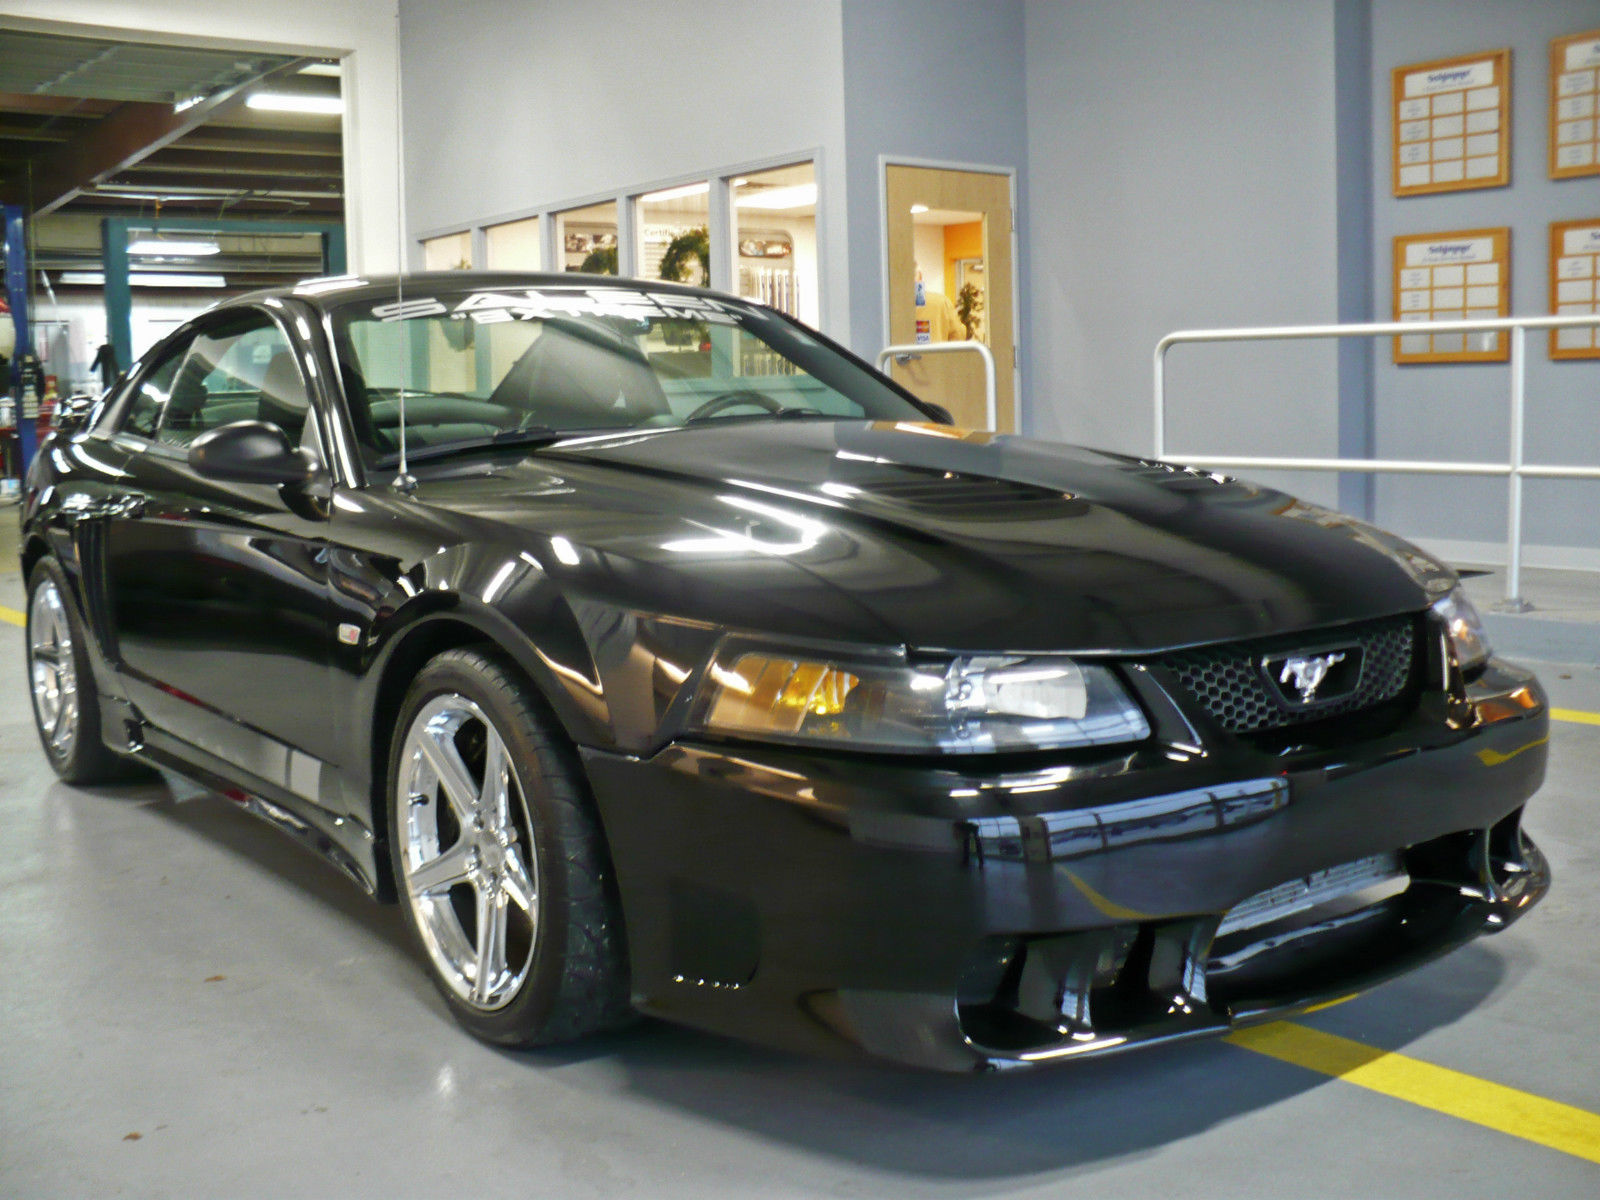 Rare 2004 Extreme 04 0011 Offered On Ebay Saleen Owners And